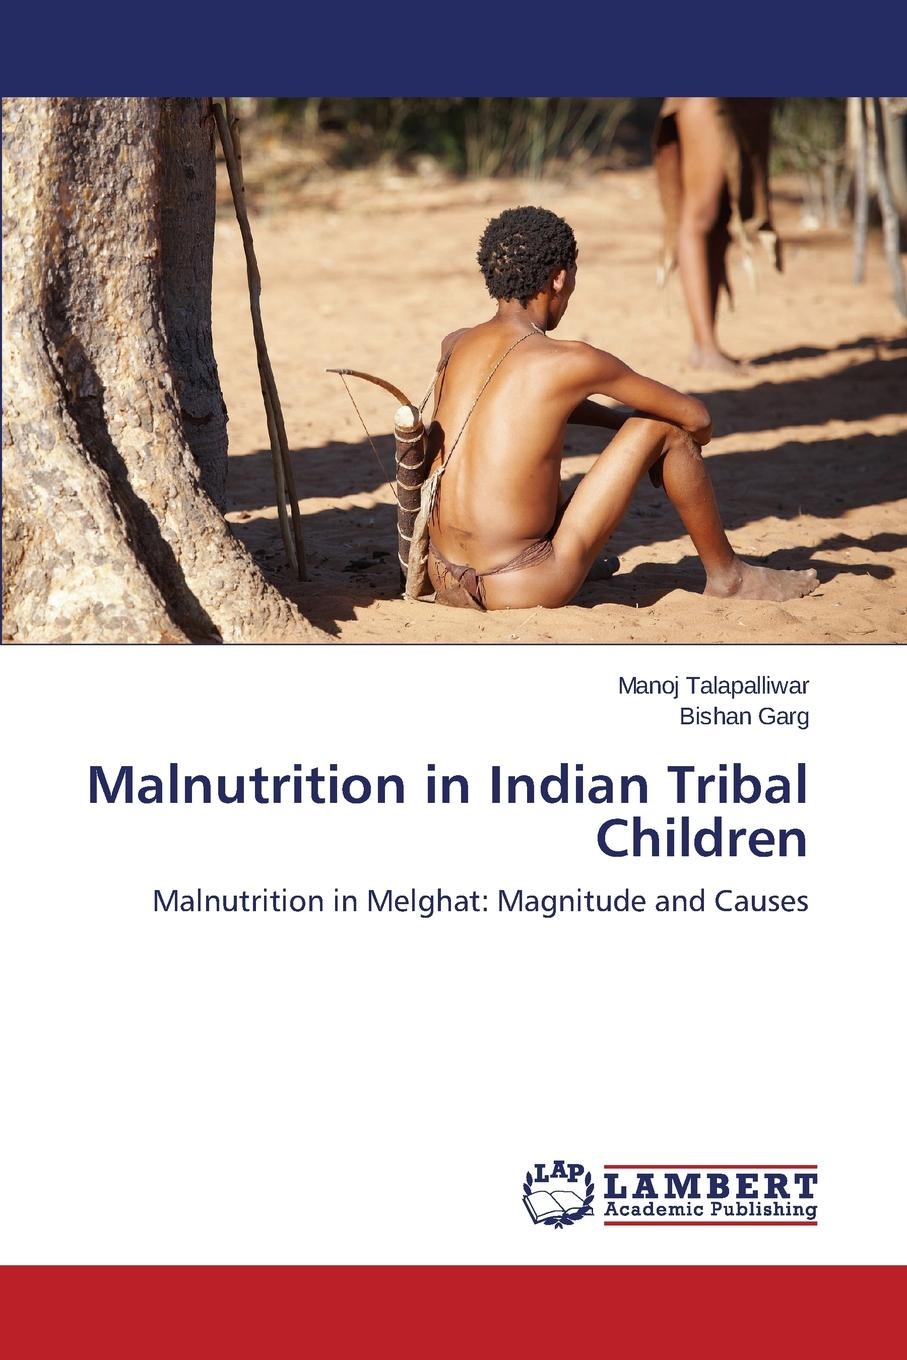 Talapalliwar Manoj, Garg Bishan Malnutrition in Indian Tribal Children study of icds scheme in rural and tribal projects in maharashtra